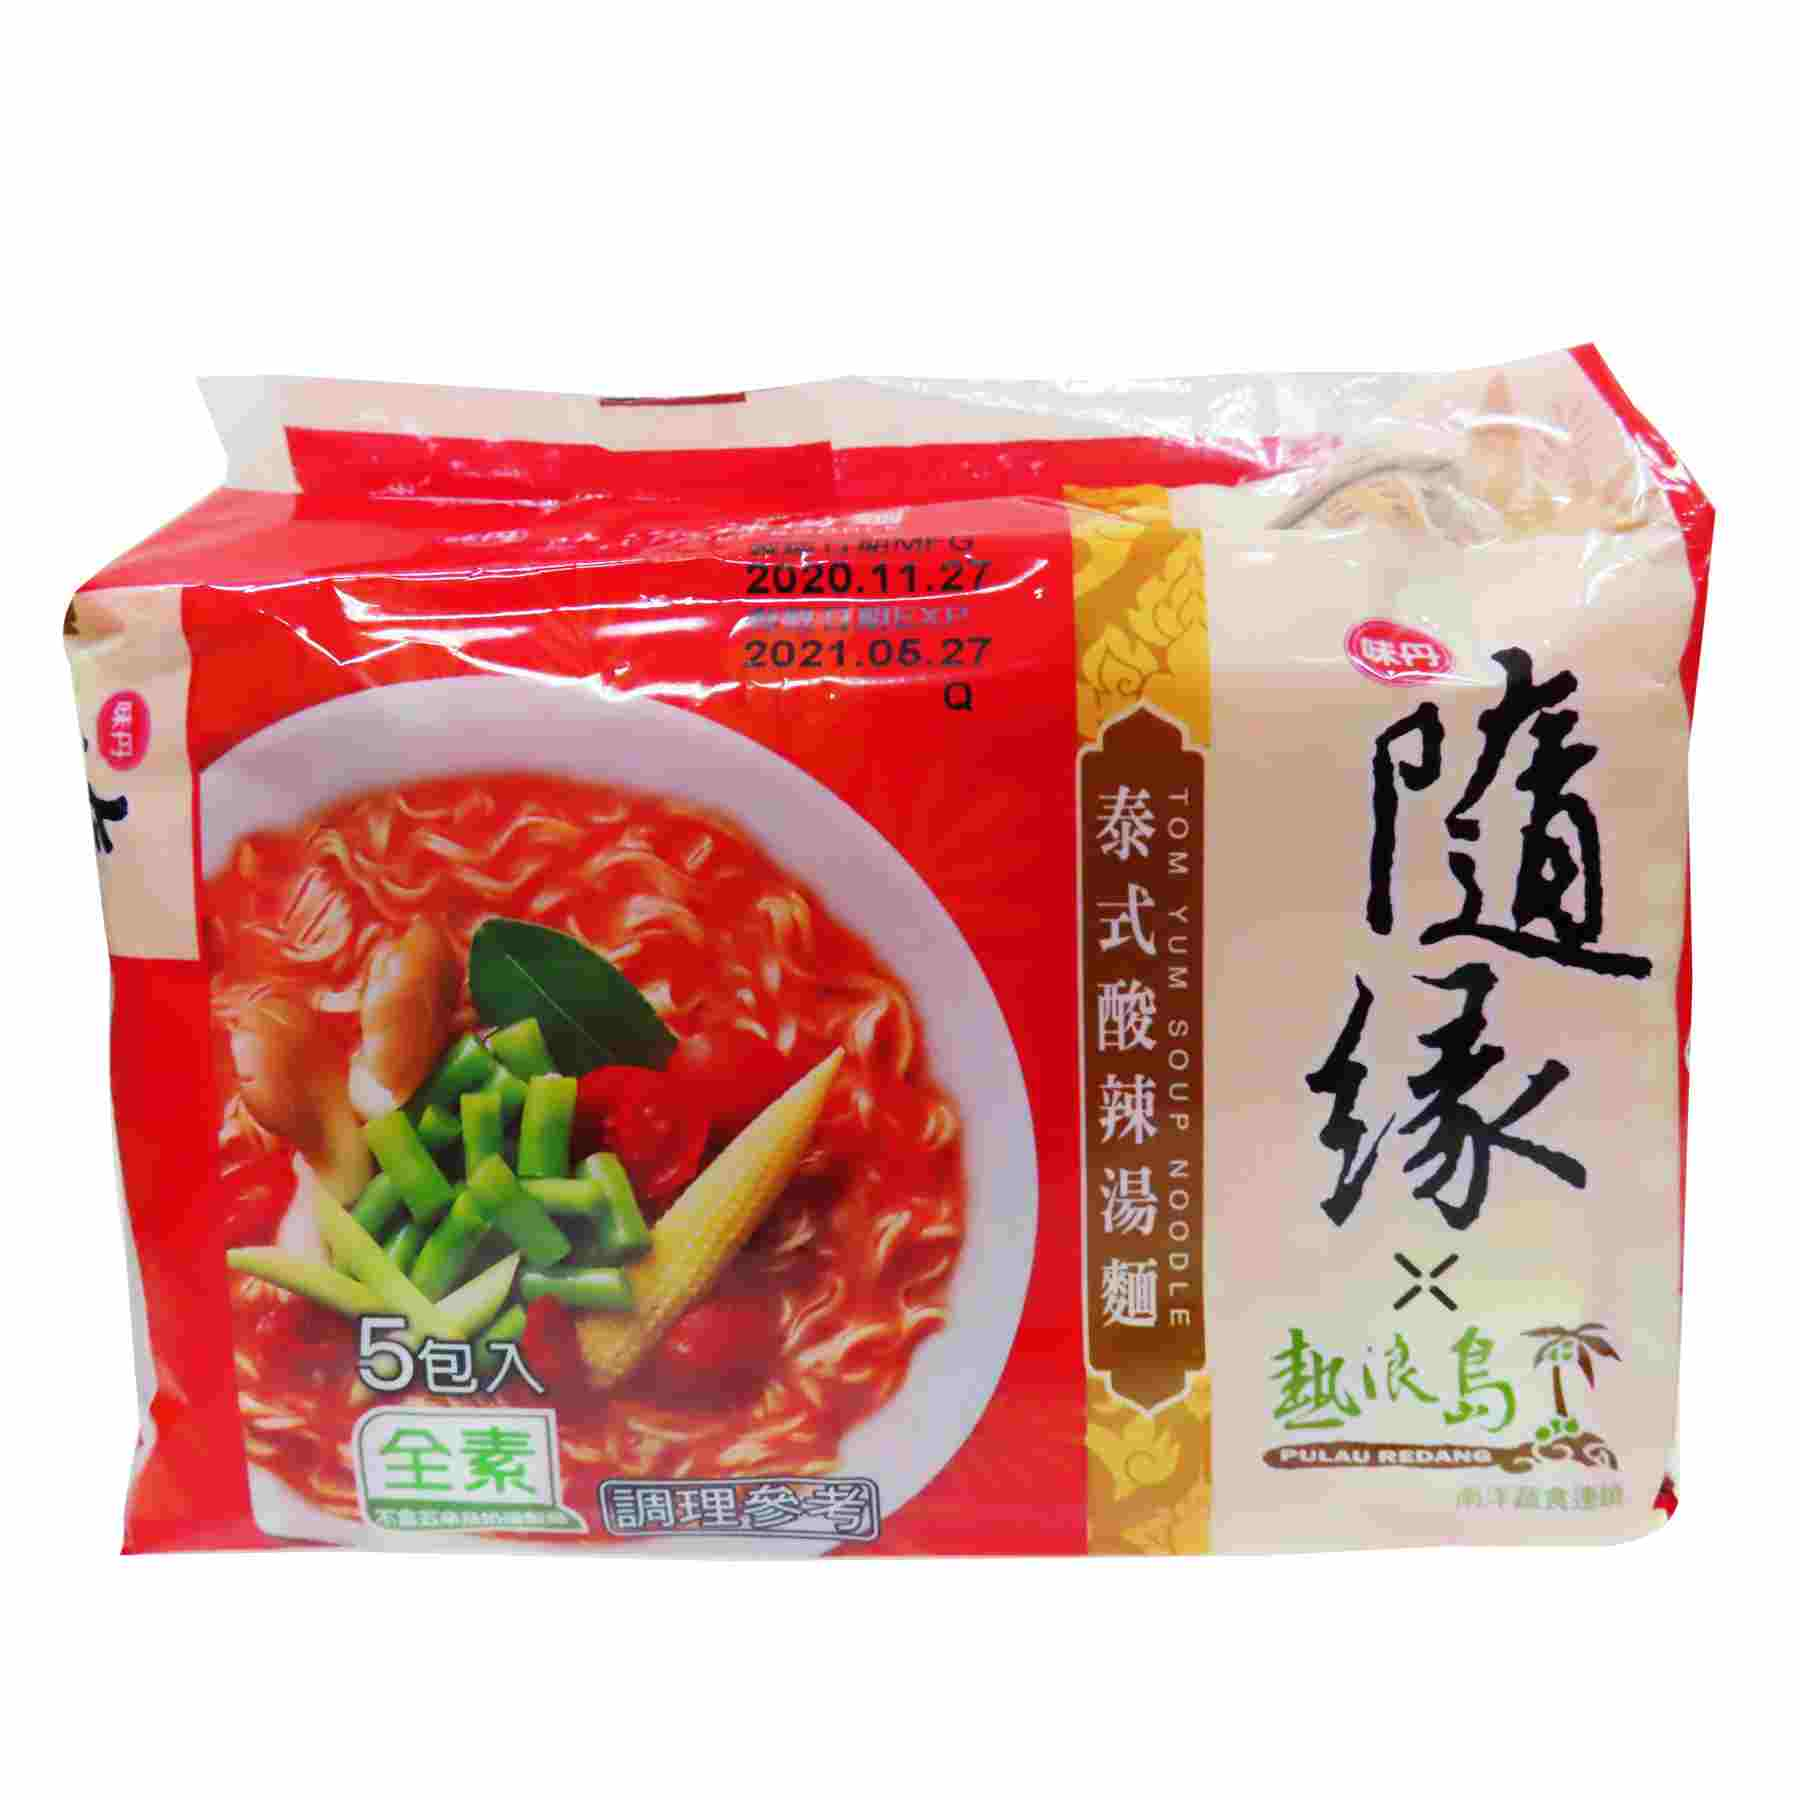 Image Tom Yum Soup Noodle 随缘 - 泰式酸辣汤面 430grams